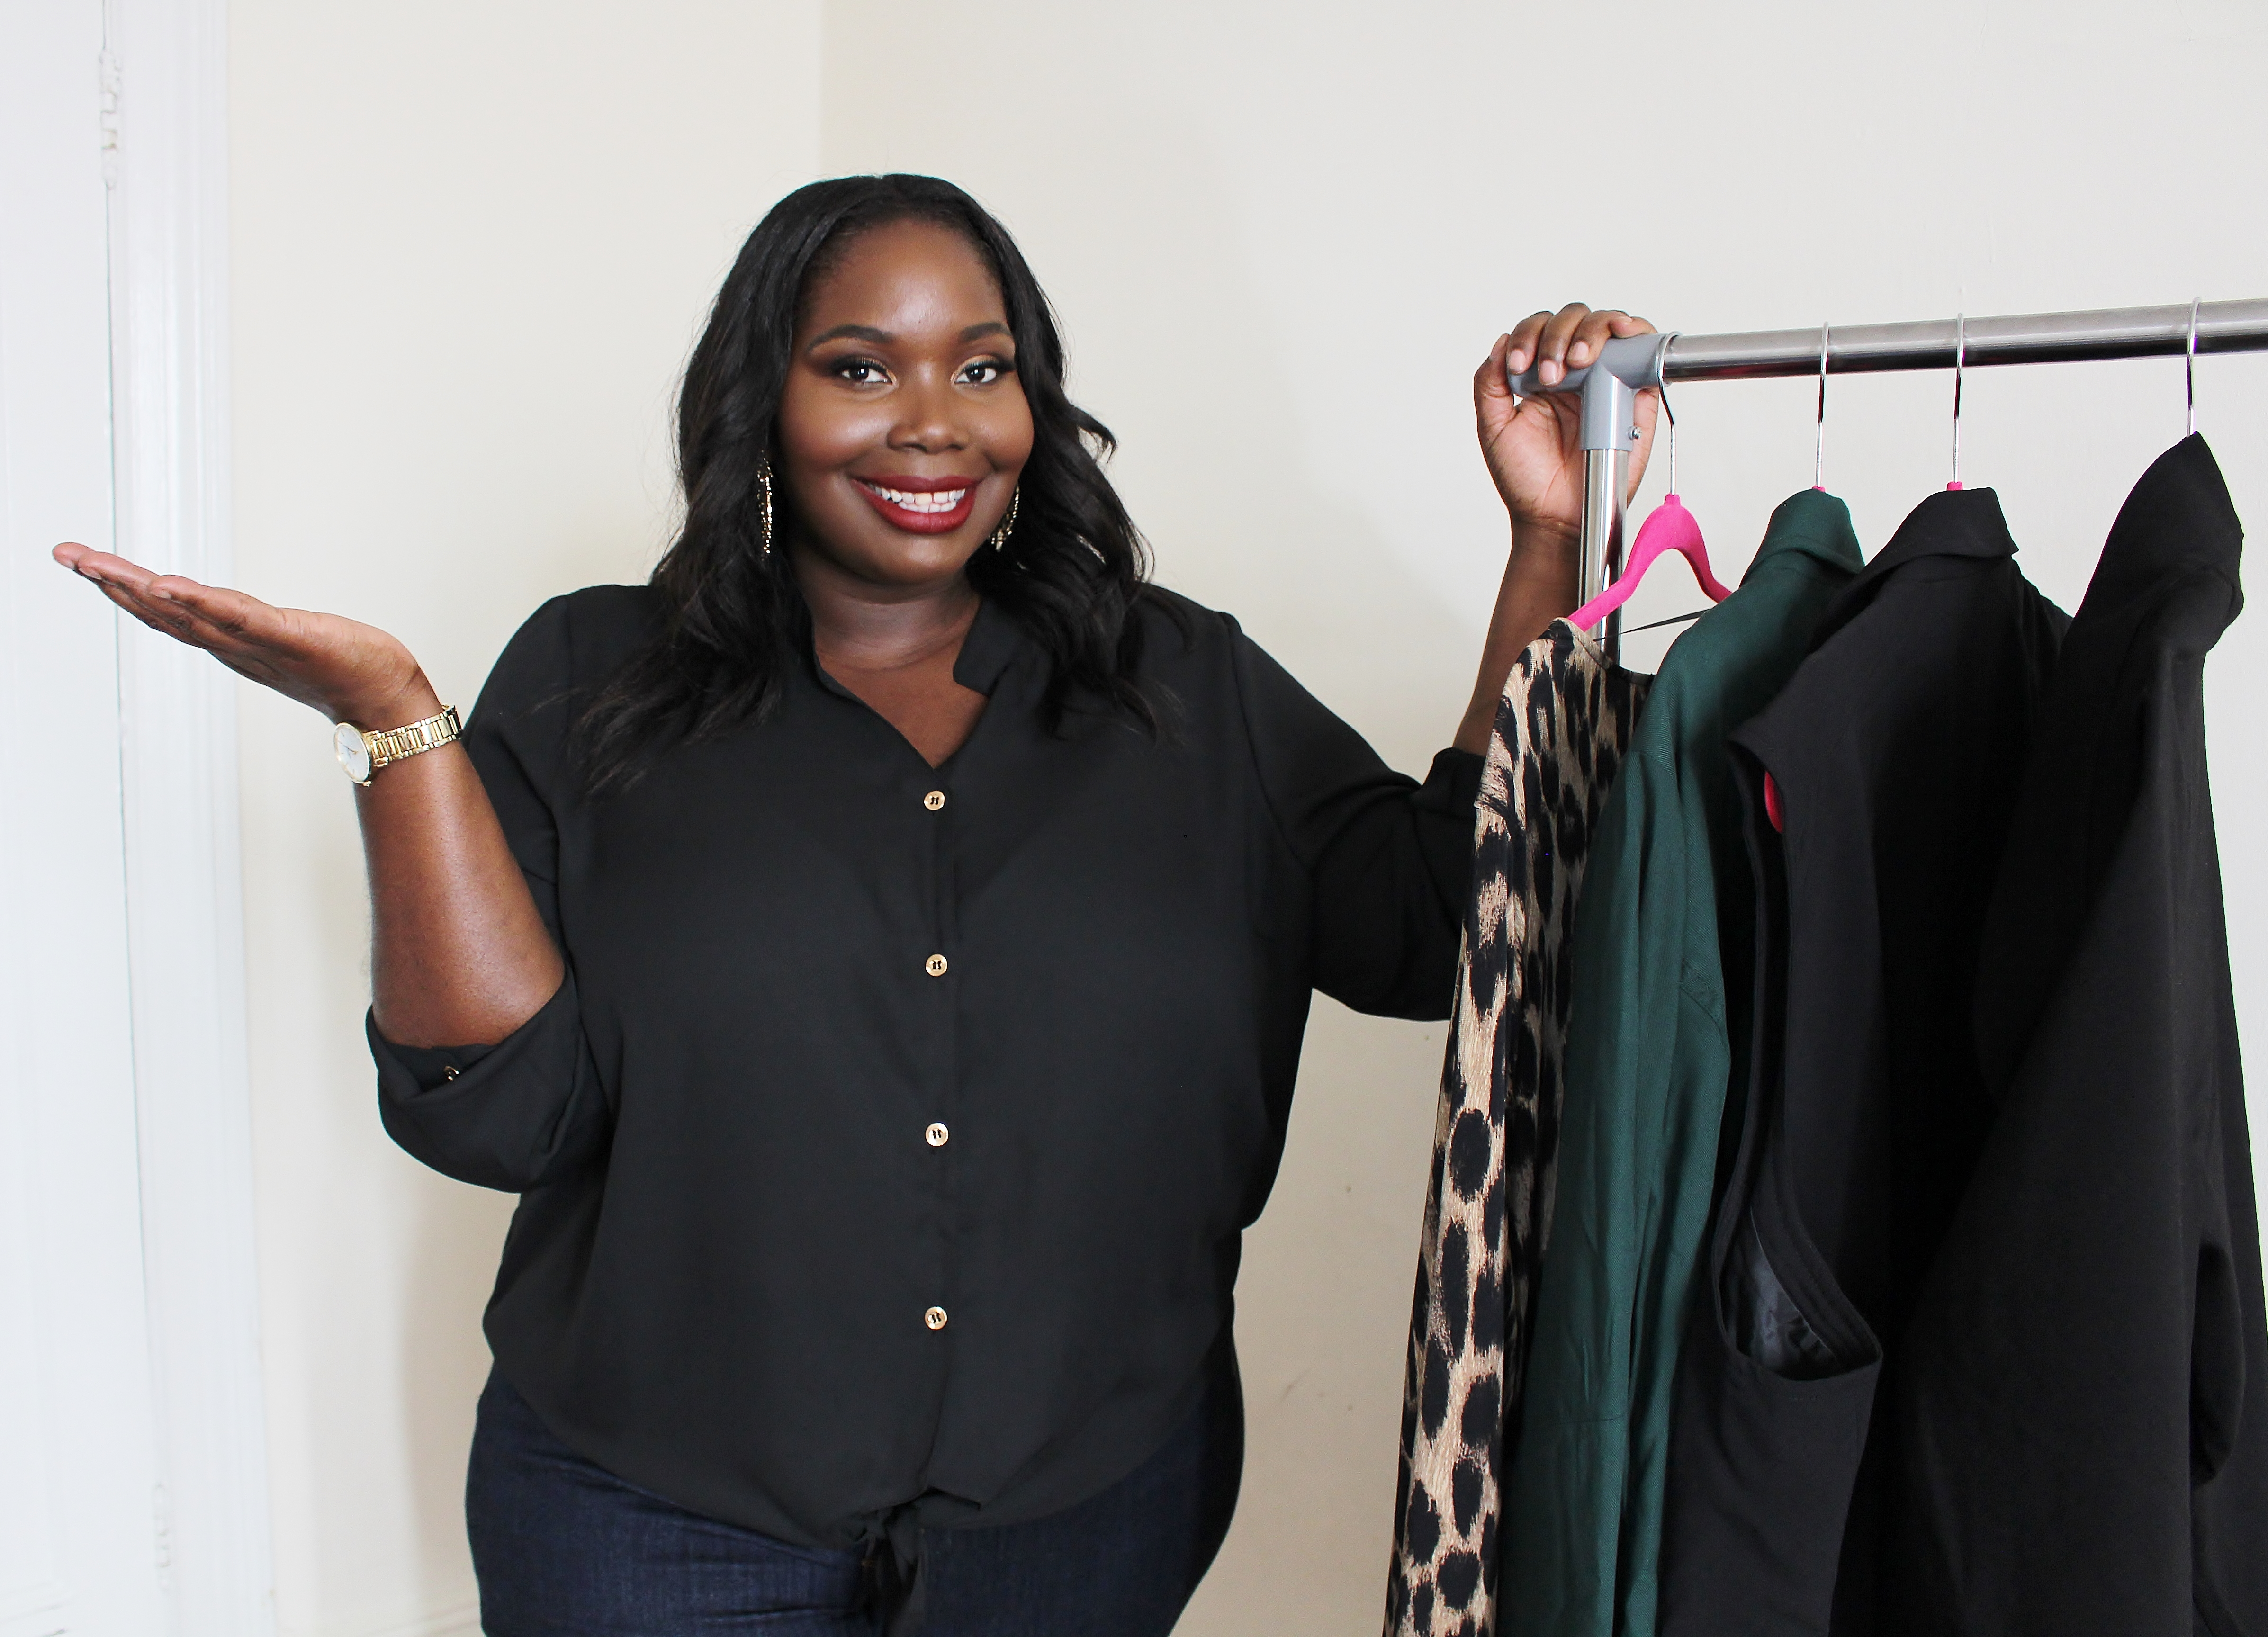 65be2fd89cfc1 I Tried Joe Fresh Plus Size Line And Here's What I Thought | Stylish ...